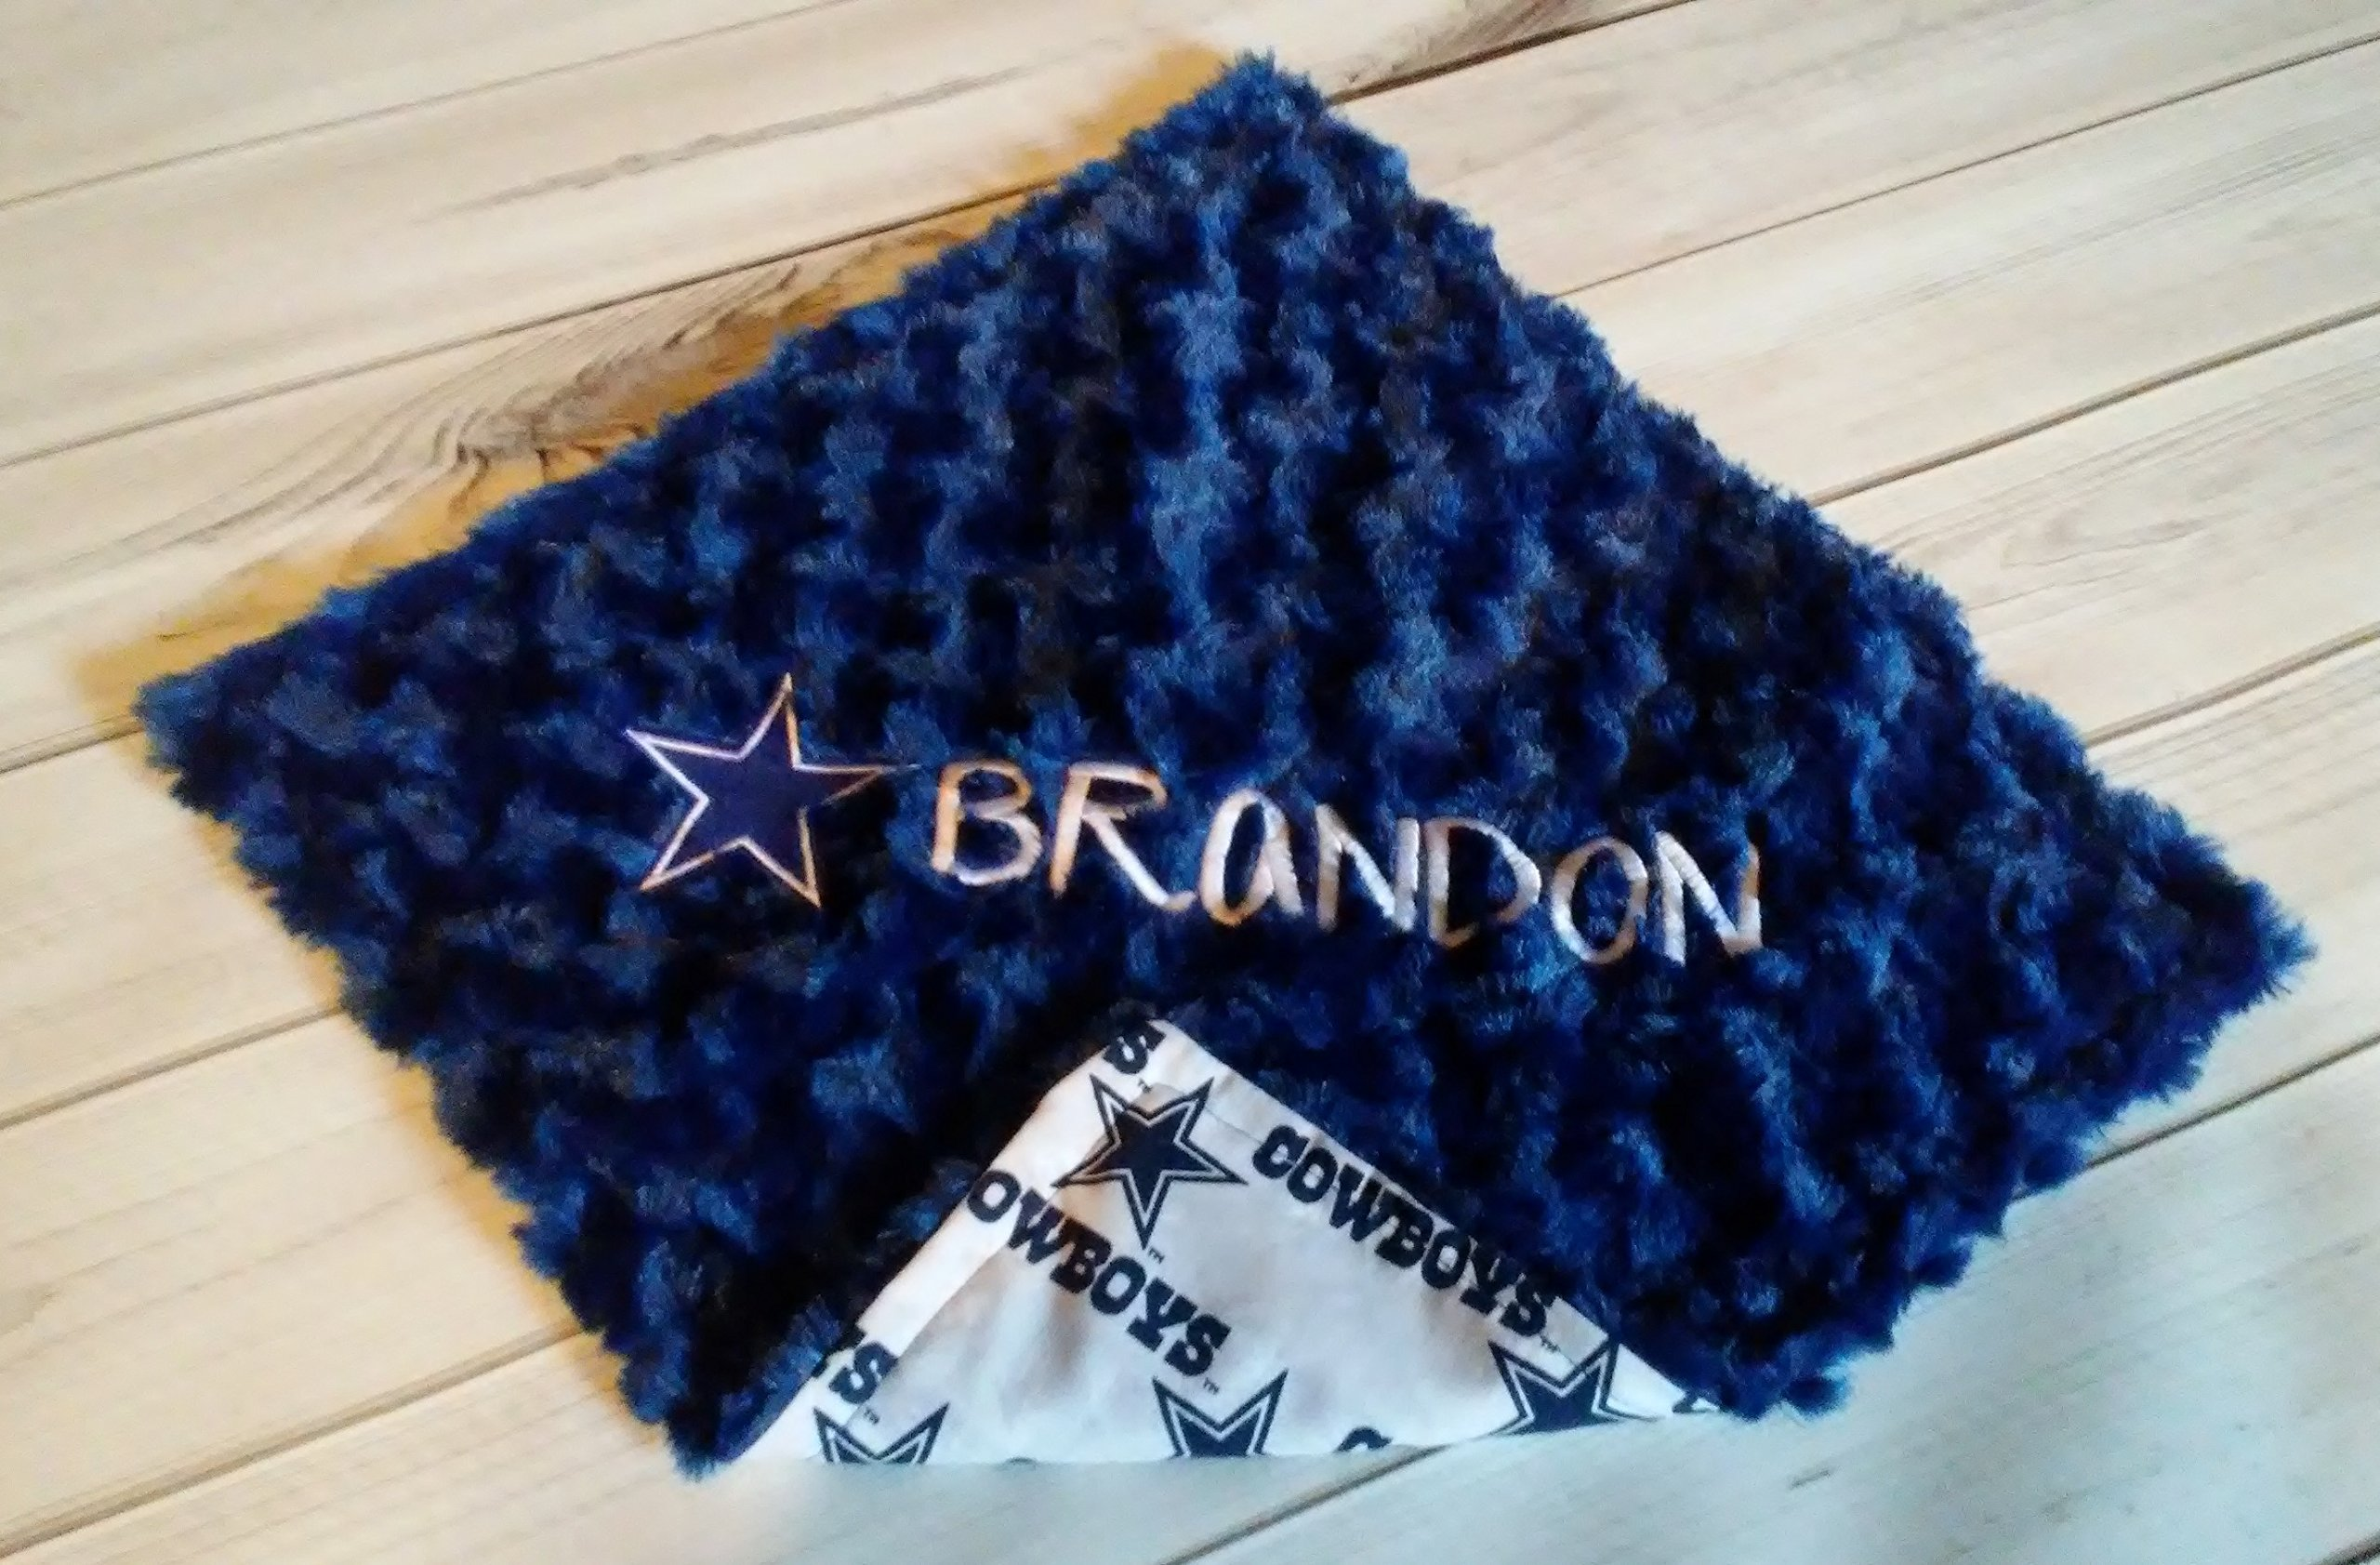 Dallas Cowboys White Blue Star Cotton and Blue Swirl Silky Minky lovey 15 x 15